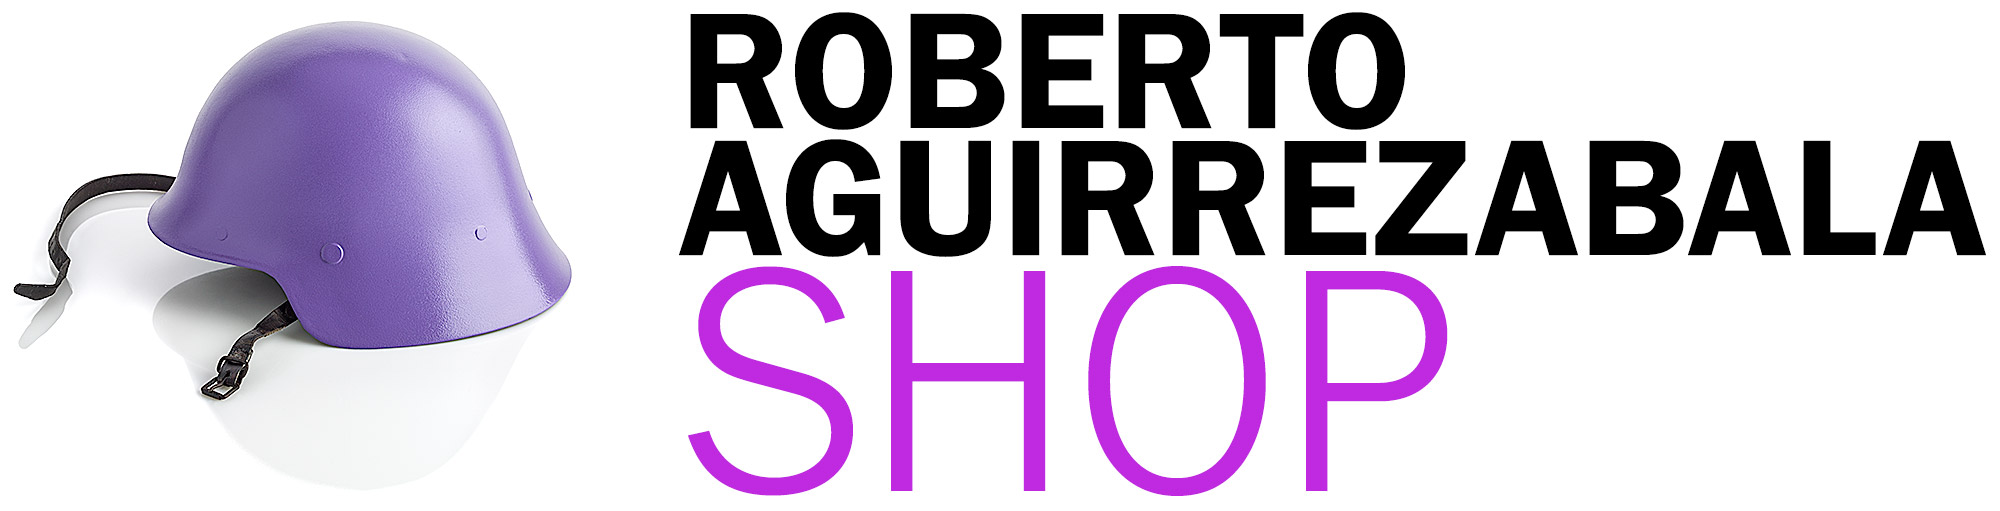 Roberto Aguirrezabala – Shop